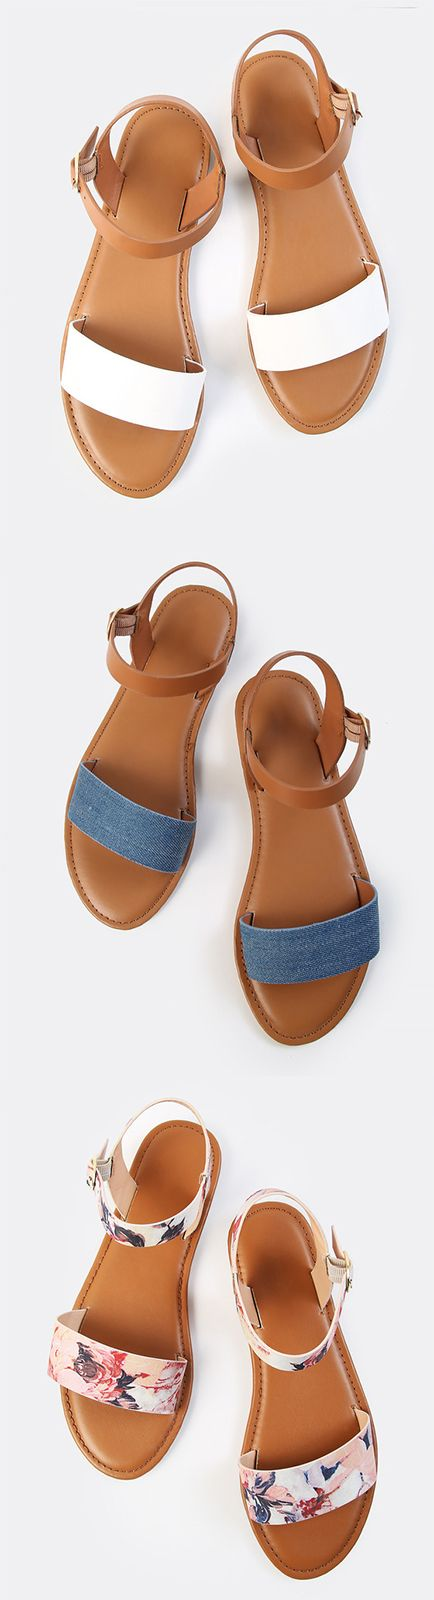 Colorblocked Sandals Summer Shoes | Sandals, Shoes, and